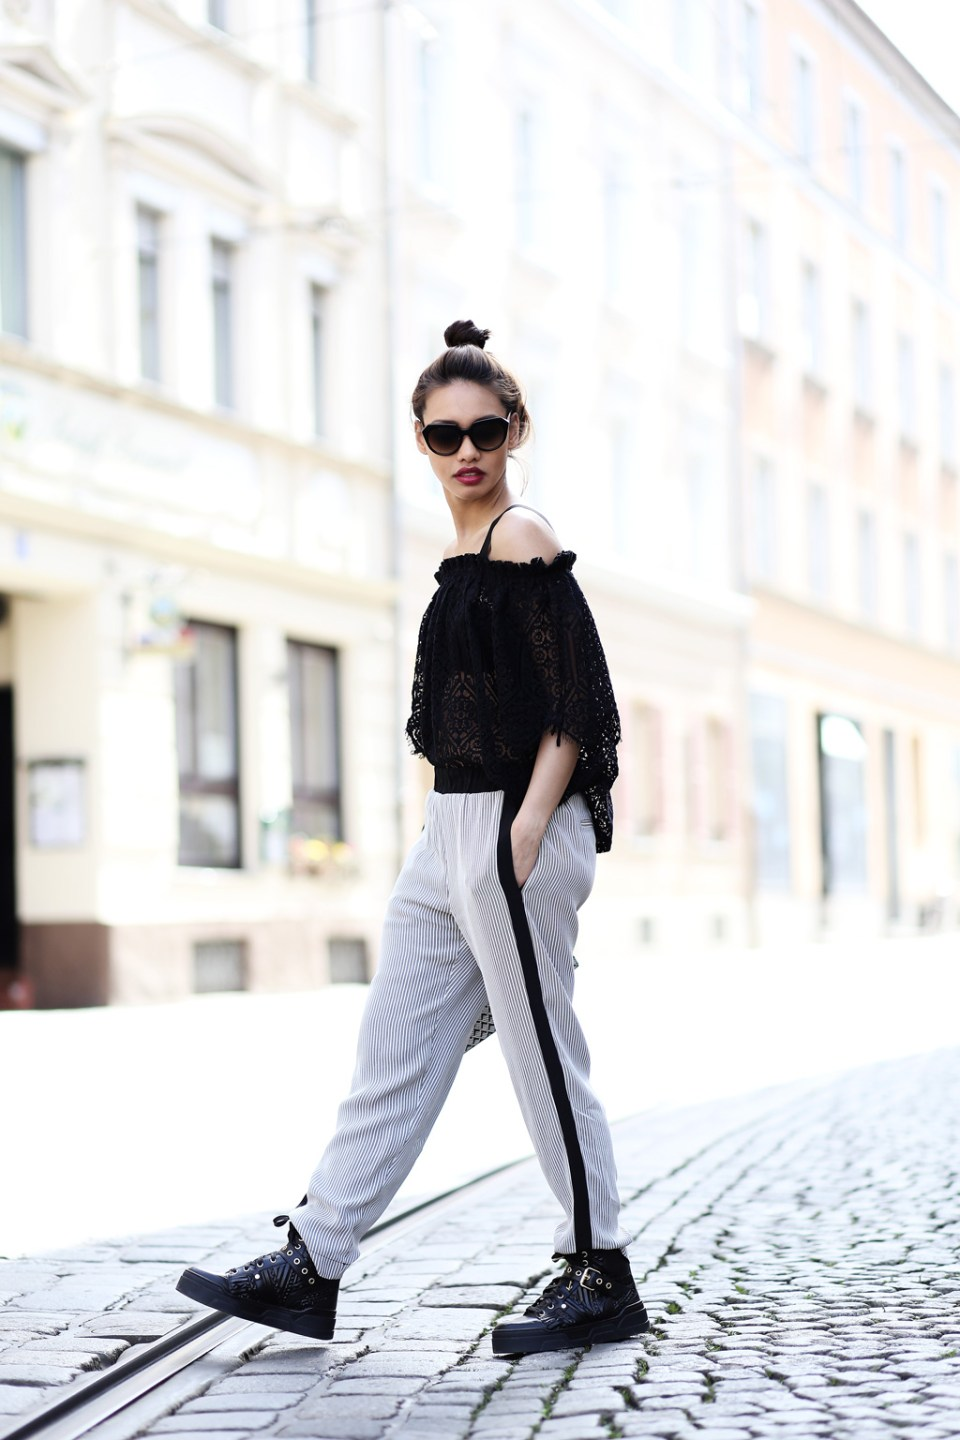 thefashionanarchy_anniep._outfit_style_look_spitze_lace_munichblogger_blogger_fashionblogger_munich_muenchen_fashionblogger_ash_sneaker_4